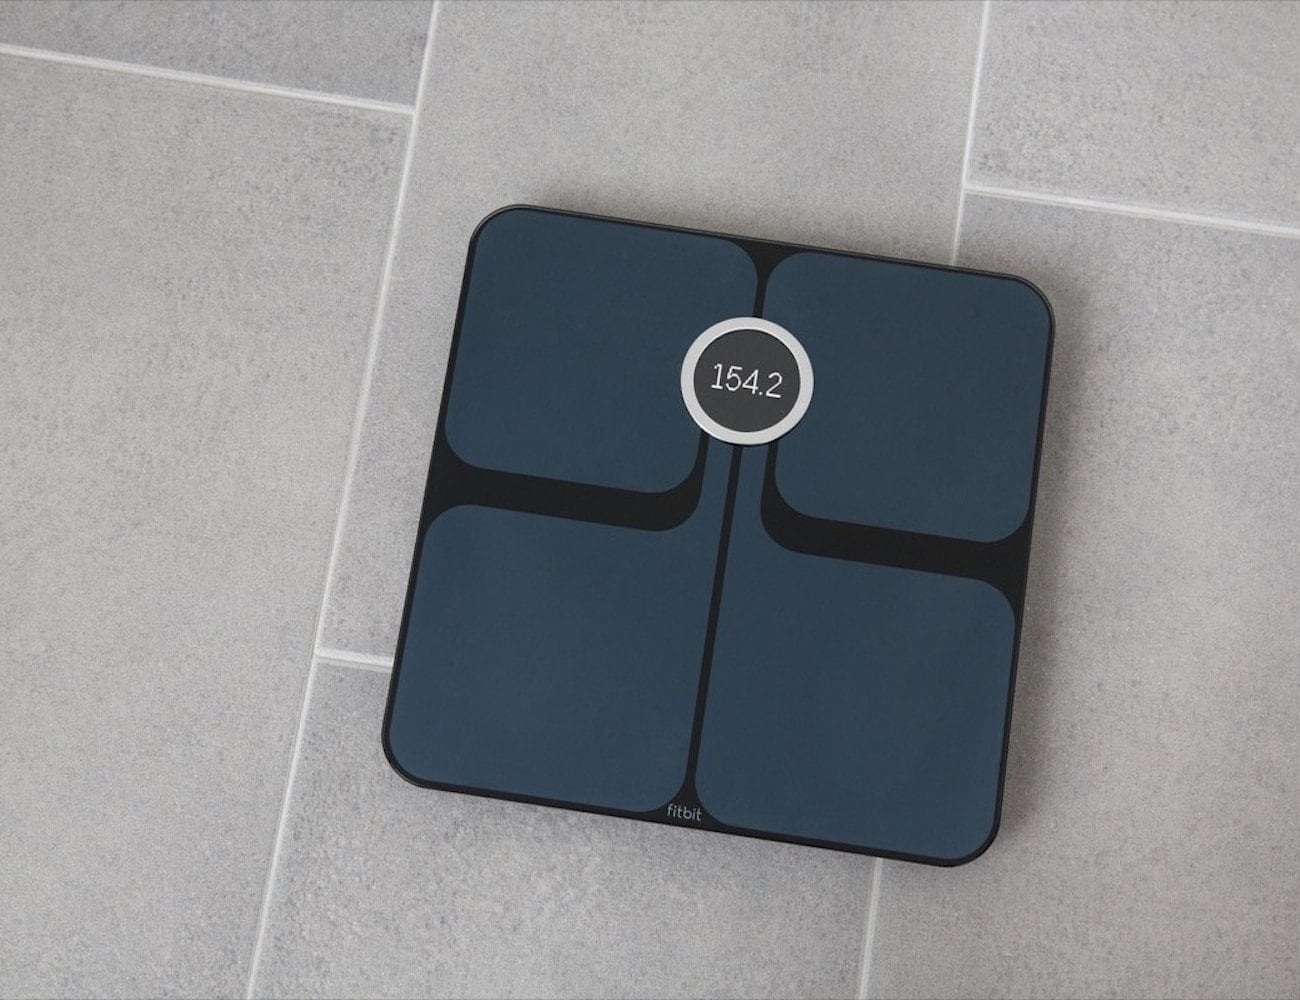 Fitbit Aria 2 Wi-Fi Smart Scale measure more than just your weight